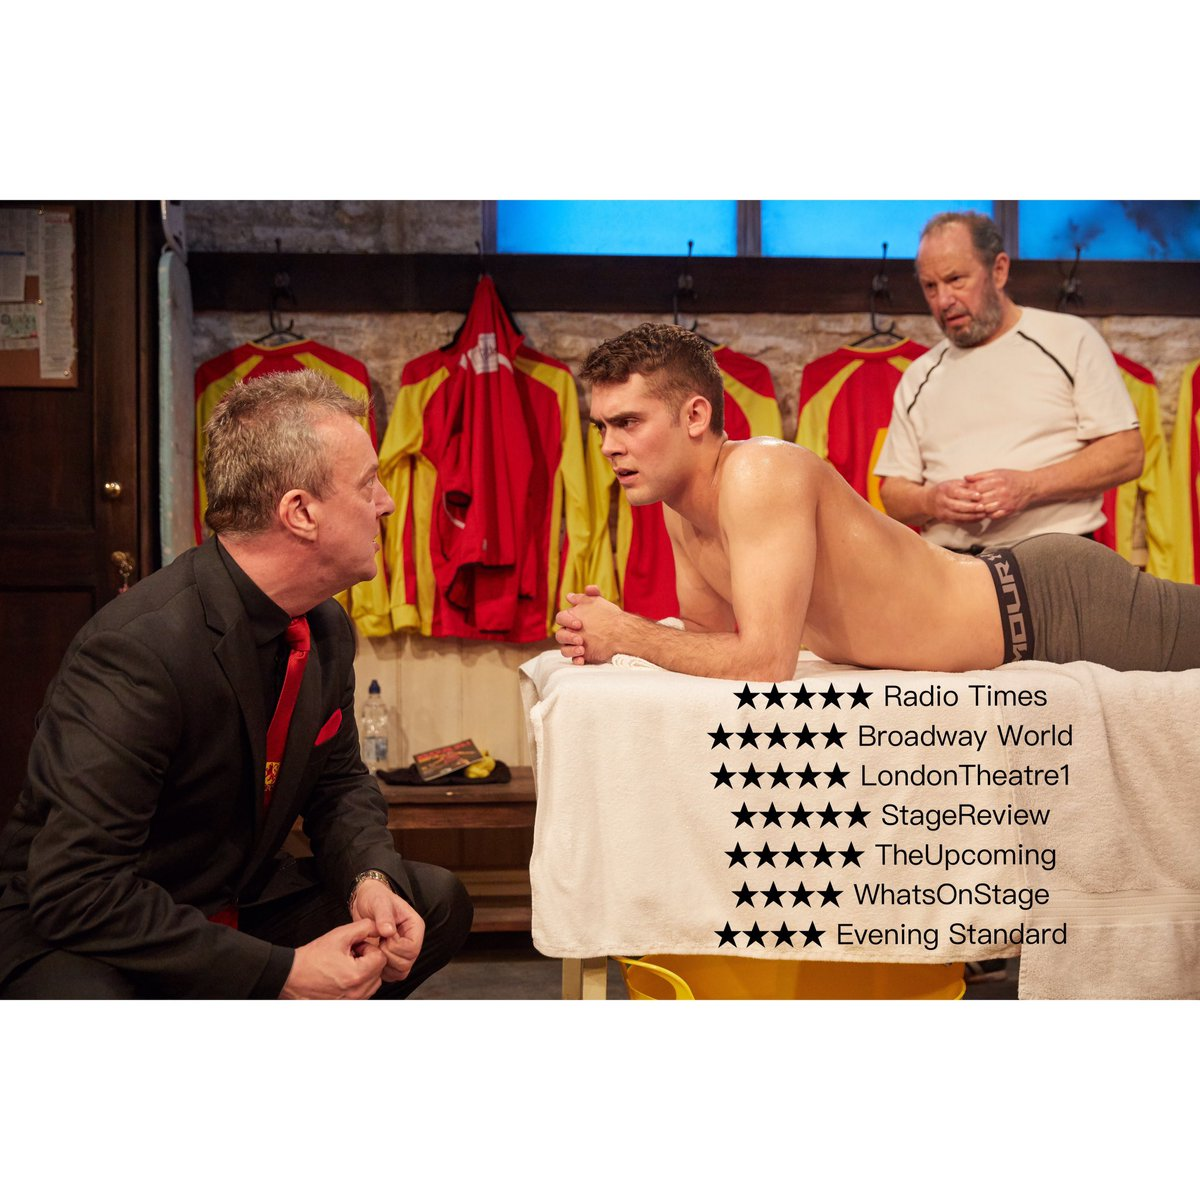 #Reviewers and #audiences are loving this production of #TheRedLion...&quot;Fantastic show. Do not miss. Best show I&#39;ve seen in ages&quot; @LiveTheatre @TrafStudios #lovetheatreday<br>http://pic.twitter.com/MfmDwksLZX &ndash; à Trafalgar Studios